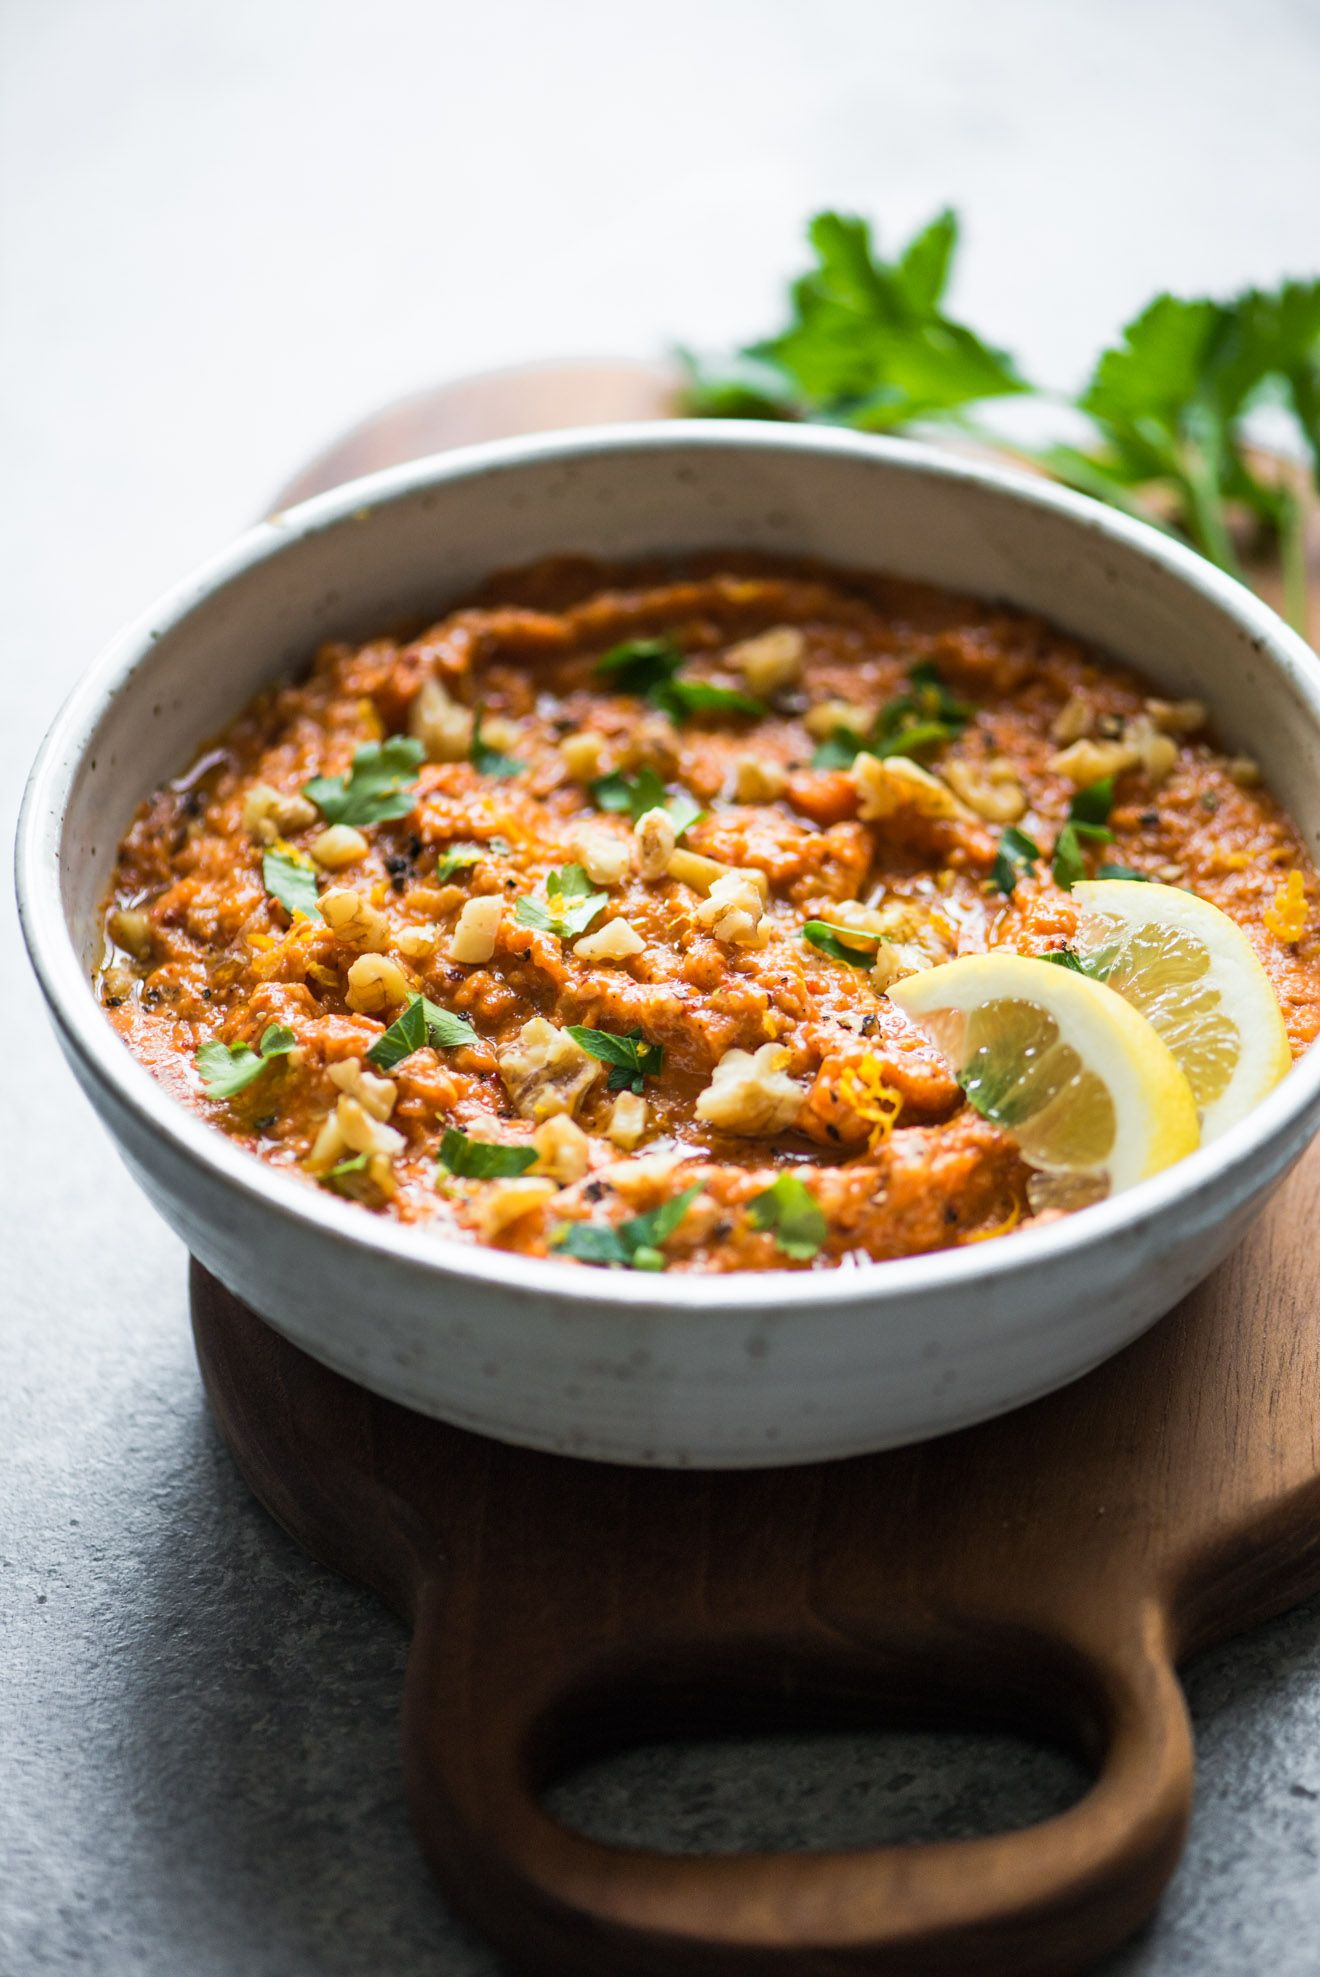 Muhammara Syrian Red Pepper Dip